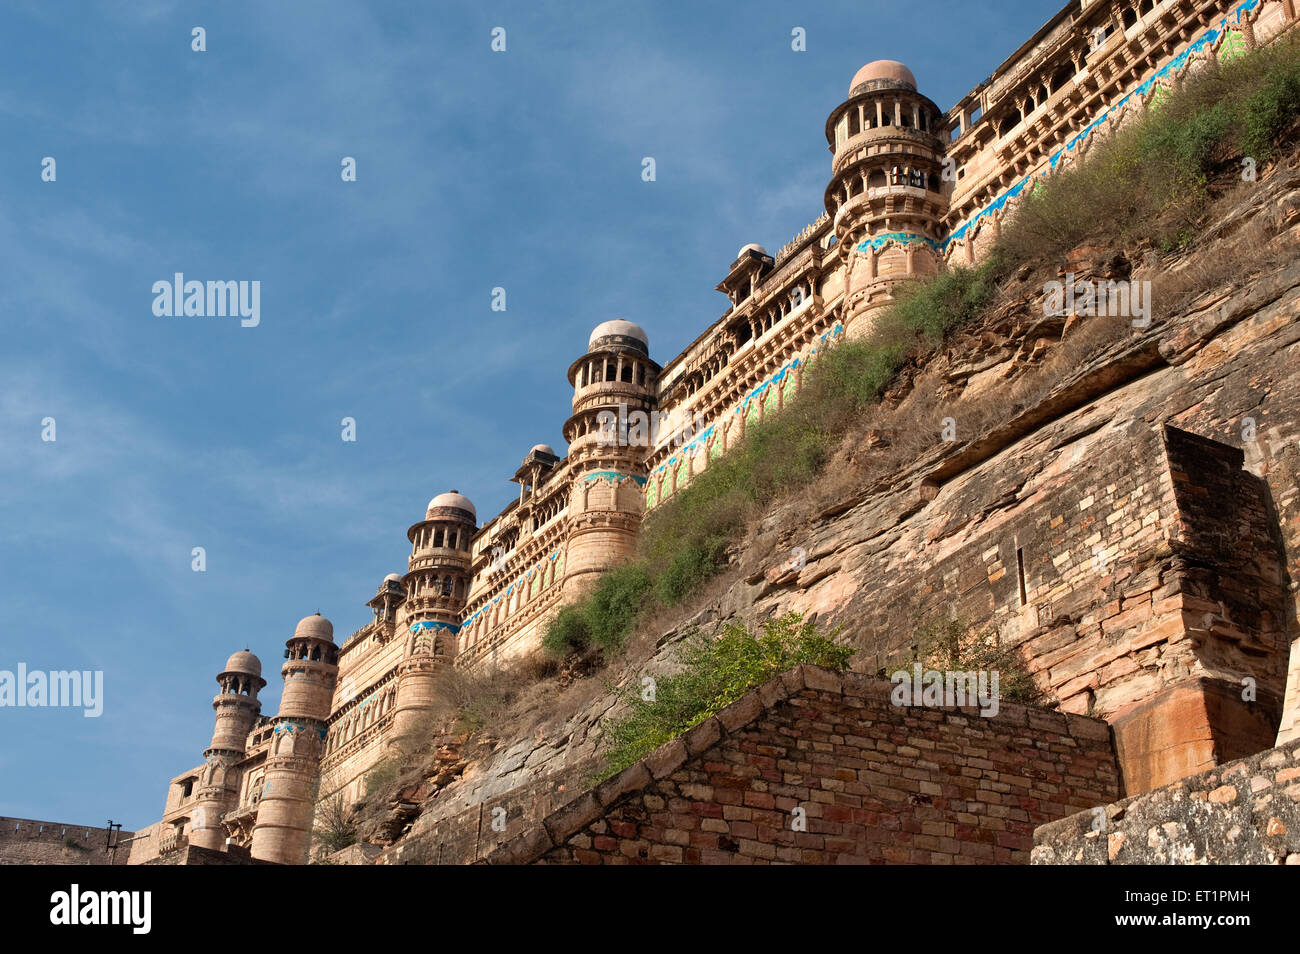 Gwalior Fort Stock Photos Gwalior Fort Stock Images Alamy